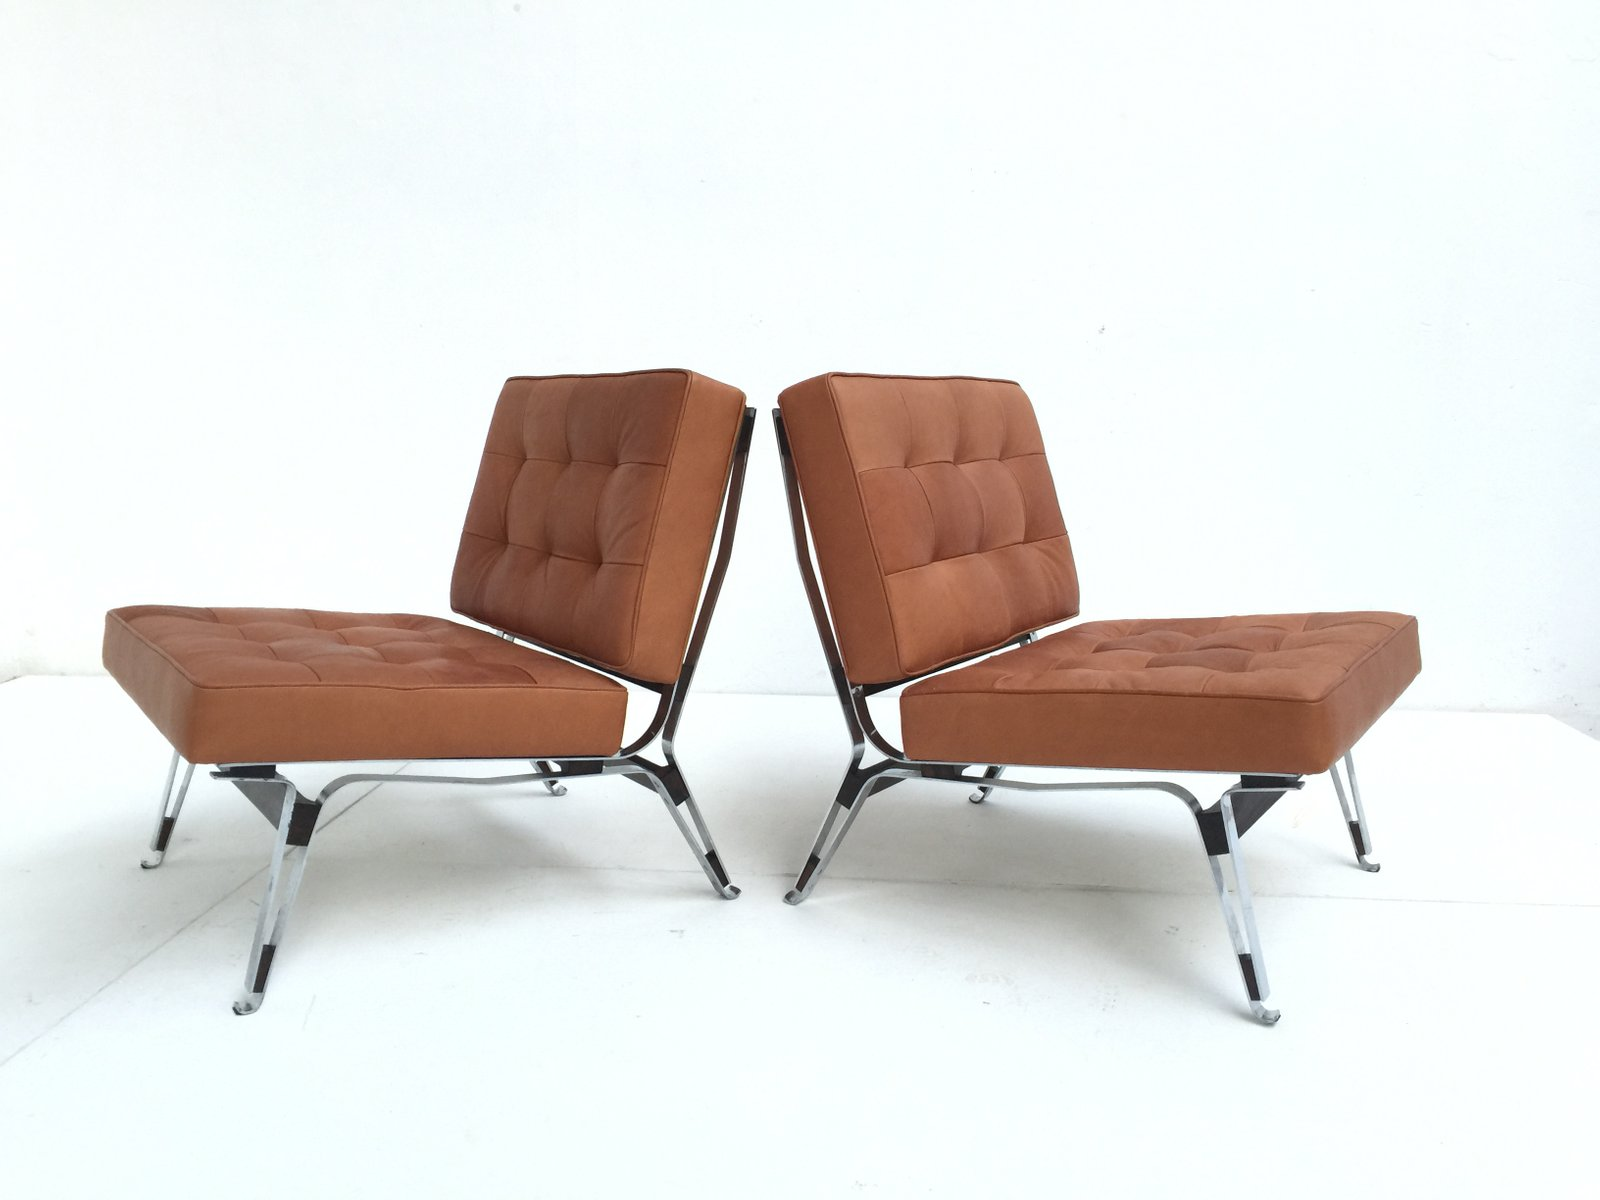 856 Leather Lounge Chairs by Ico Parisi for Cassina 1957 Set of